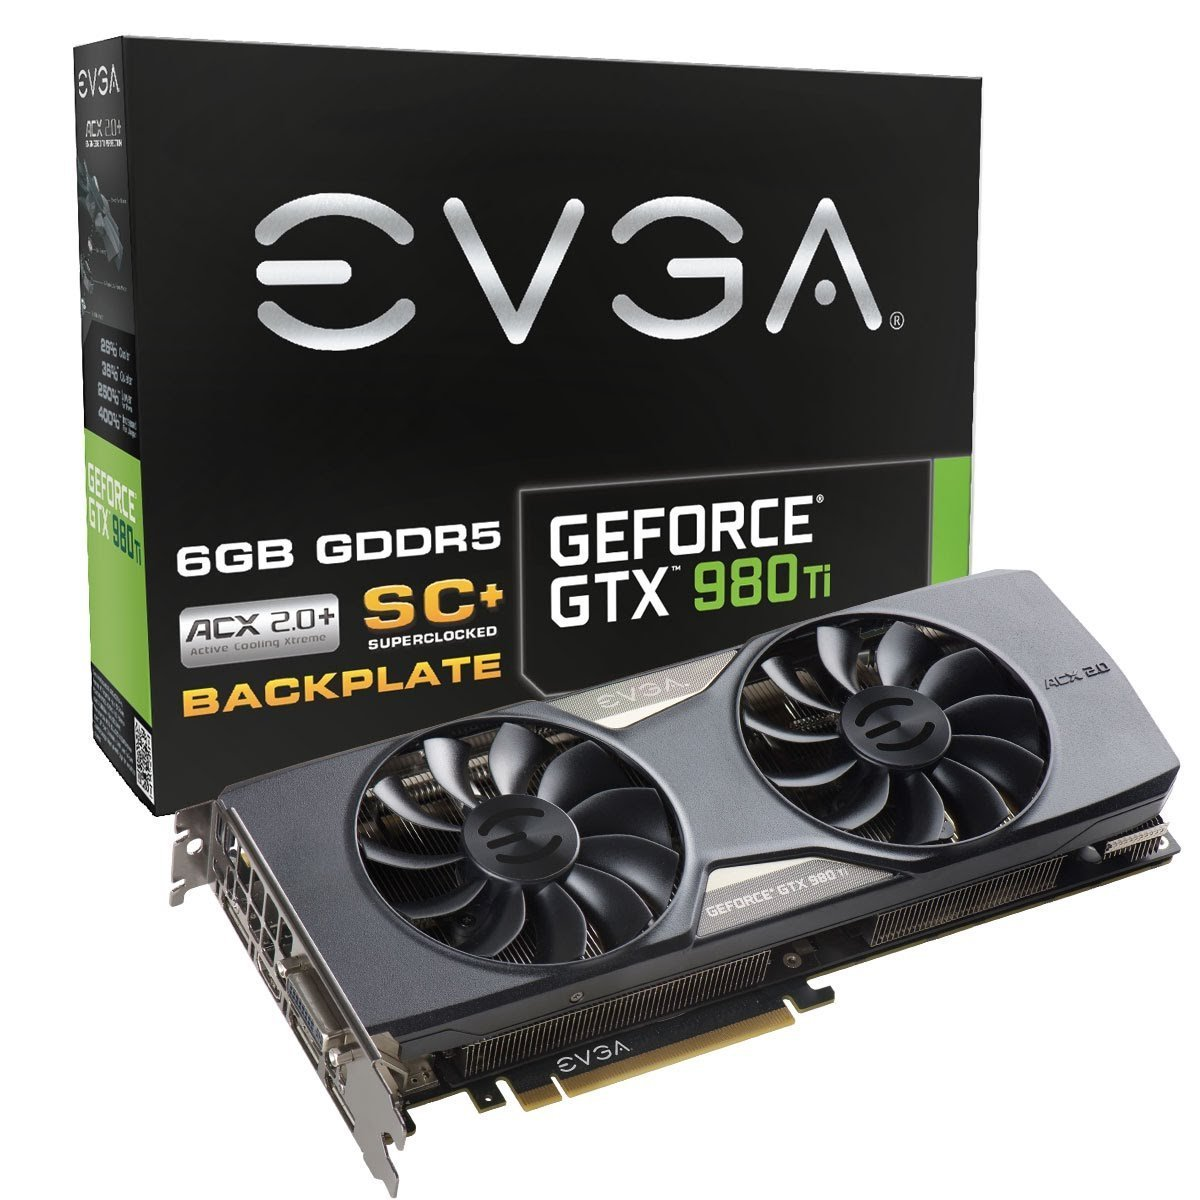 techPowerUp 512 P3 N806 AR evga 512 P3 N806 AR EVGA Releases Four New GeForce 8800GT Video Cards